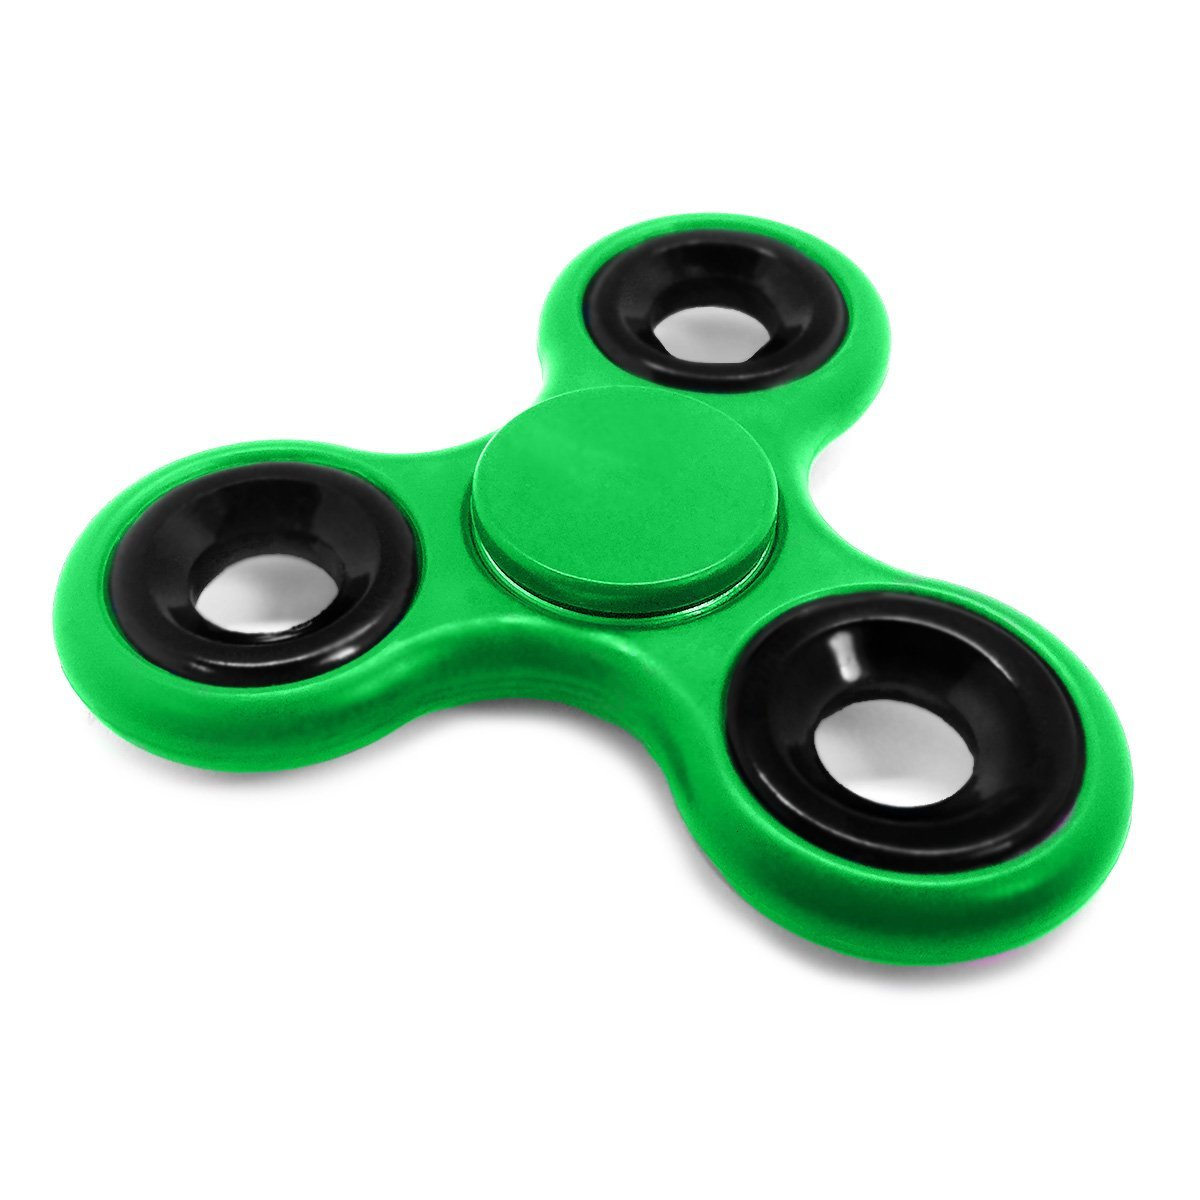 Original Green Spinner Fidget Toys